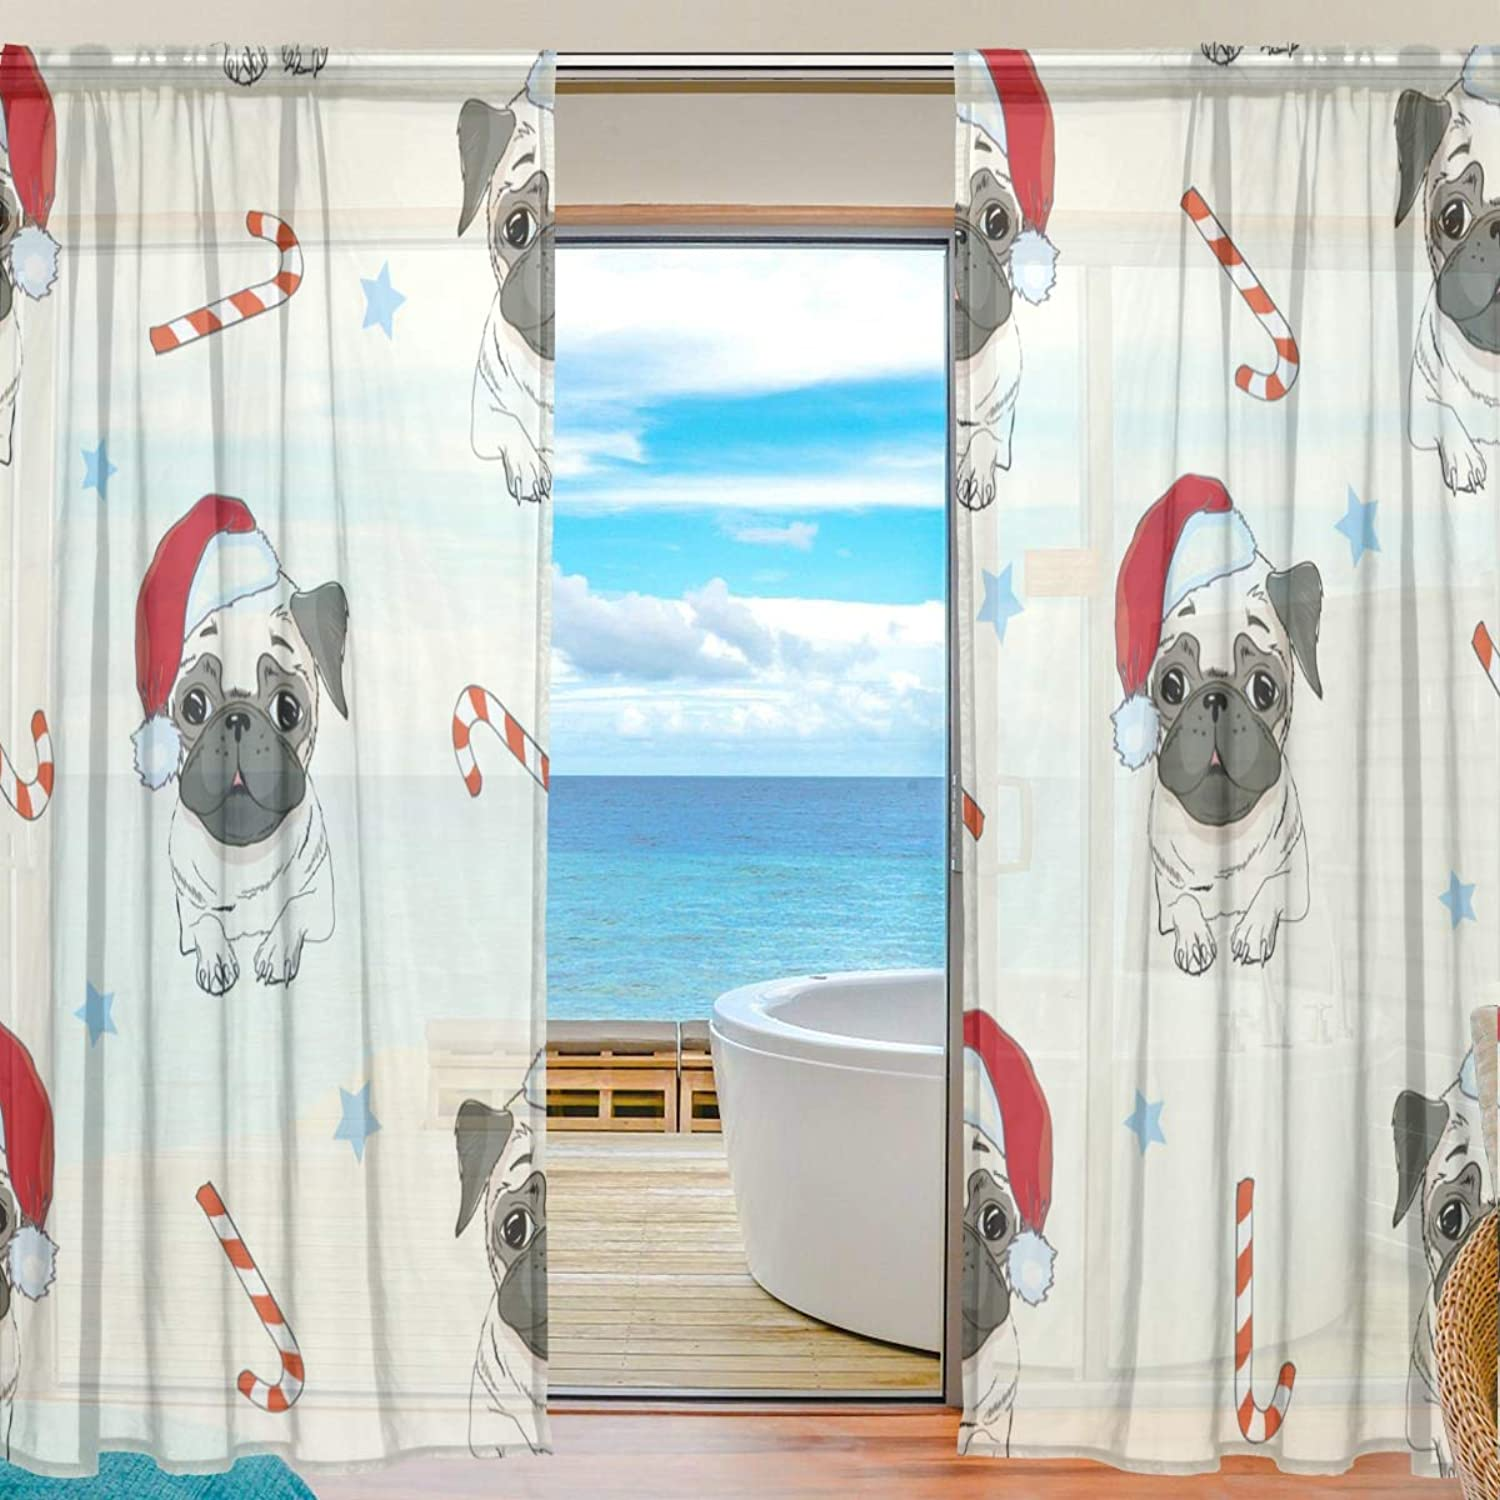 Christmas Pugs 2 Pieces Curtain Panel 55 x 78 inches for Bedroom Living Room